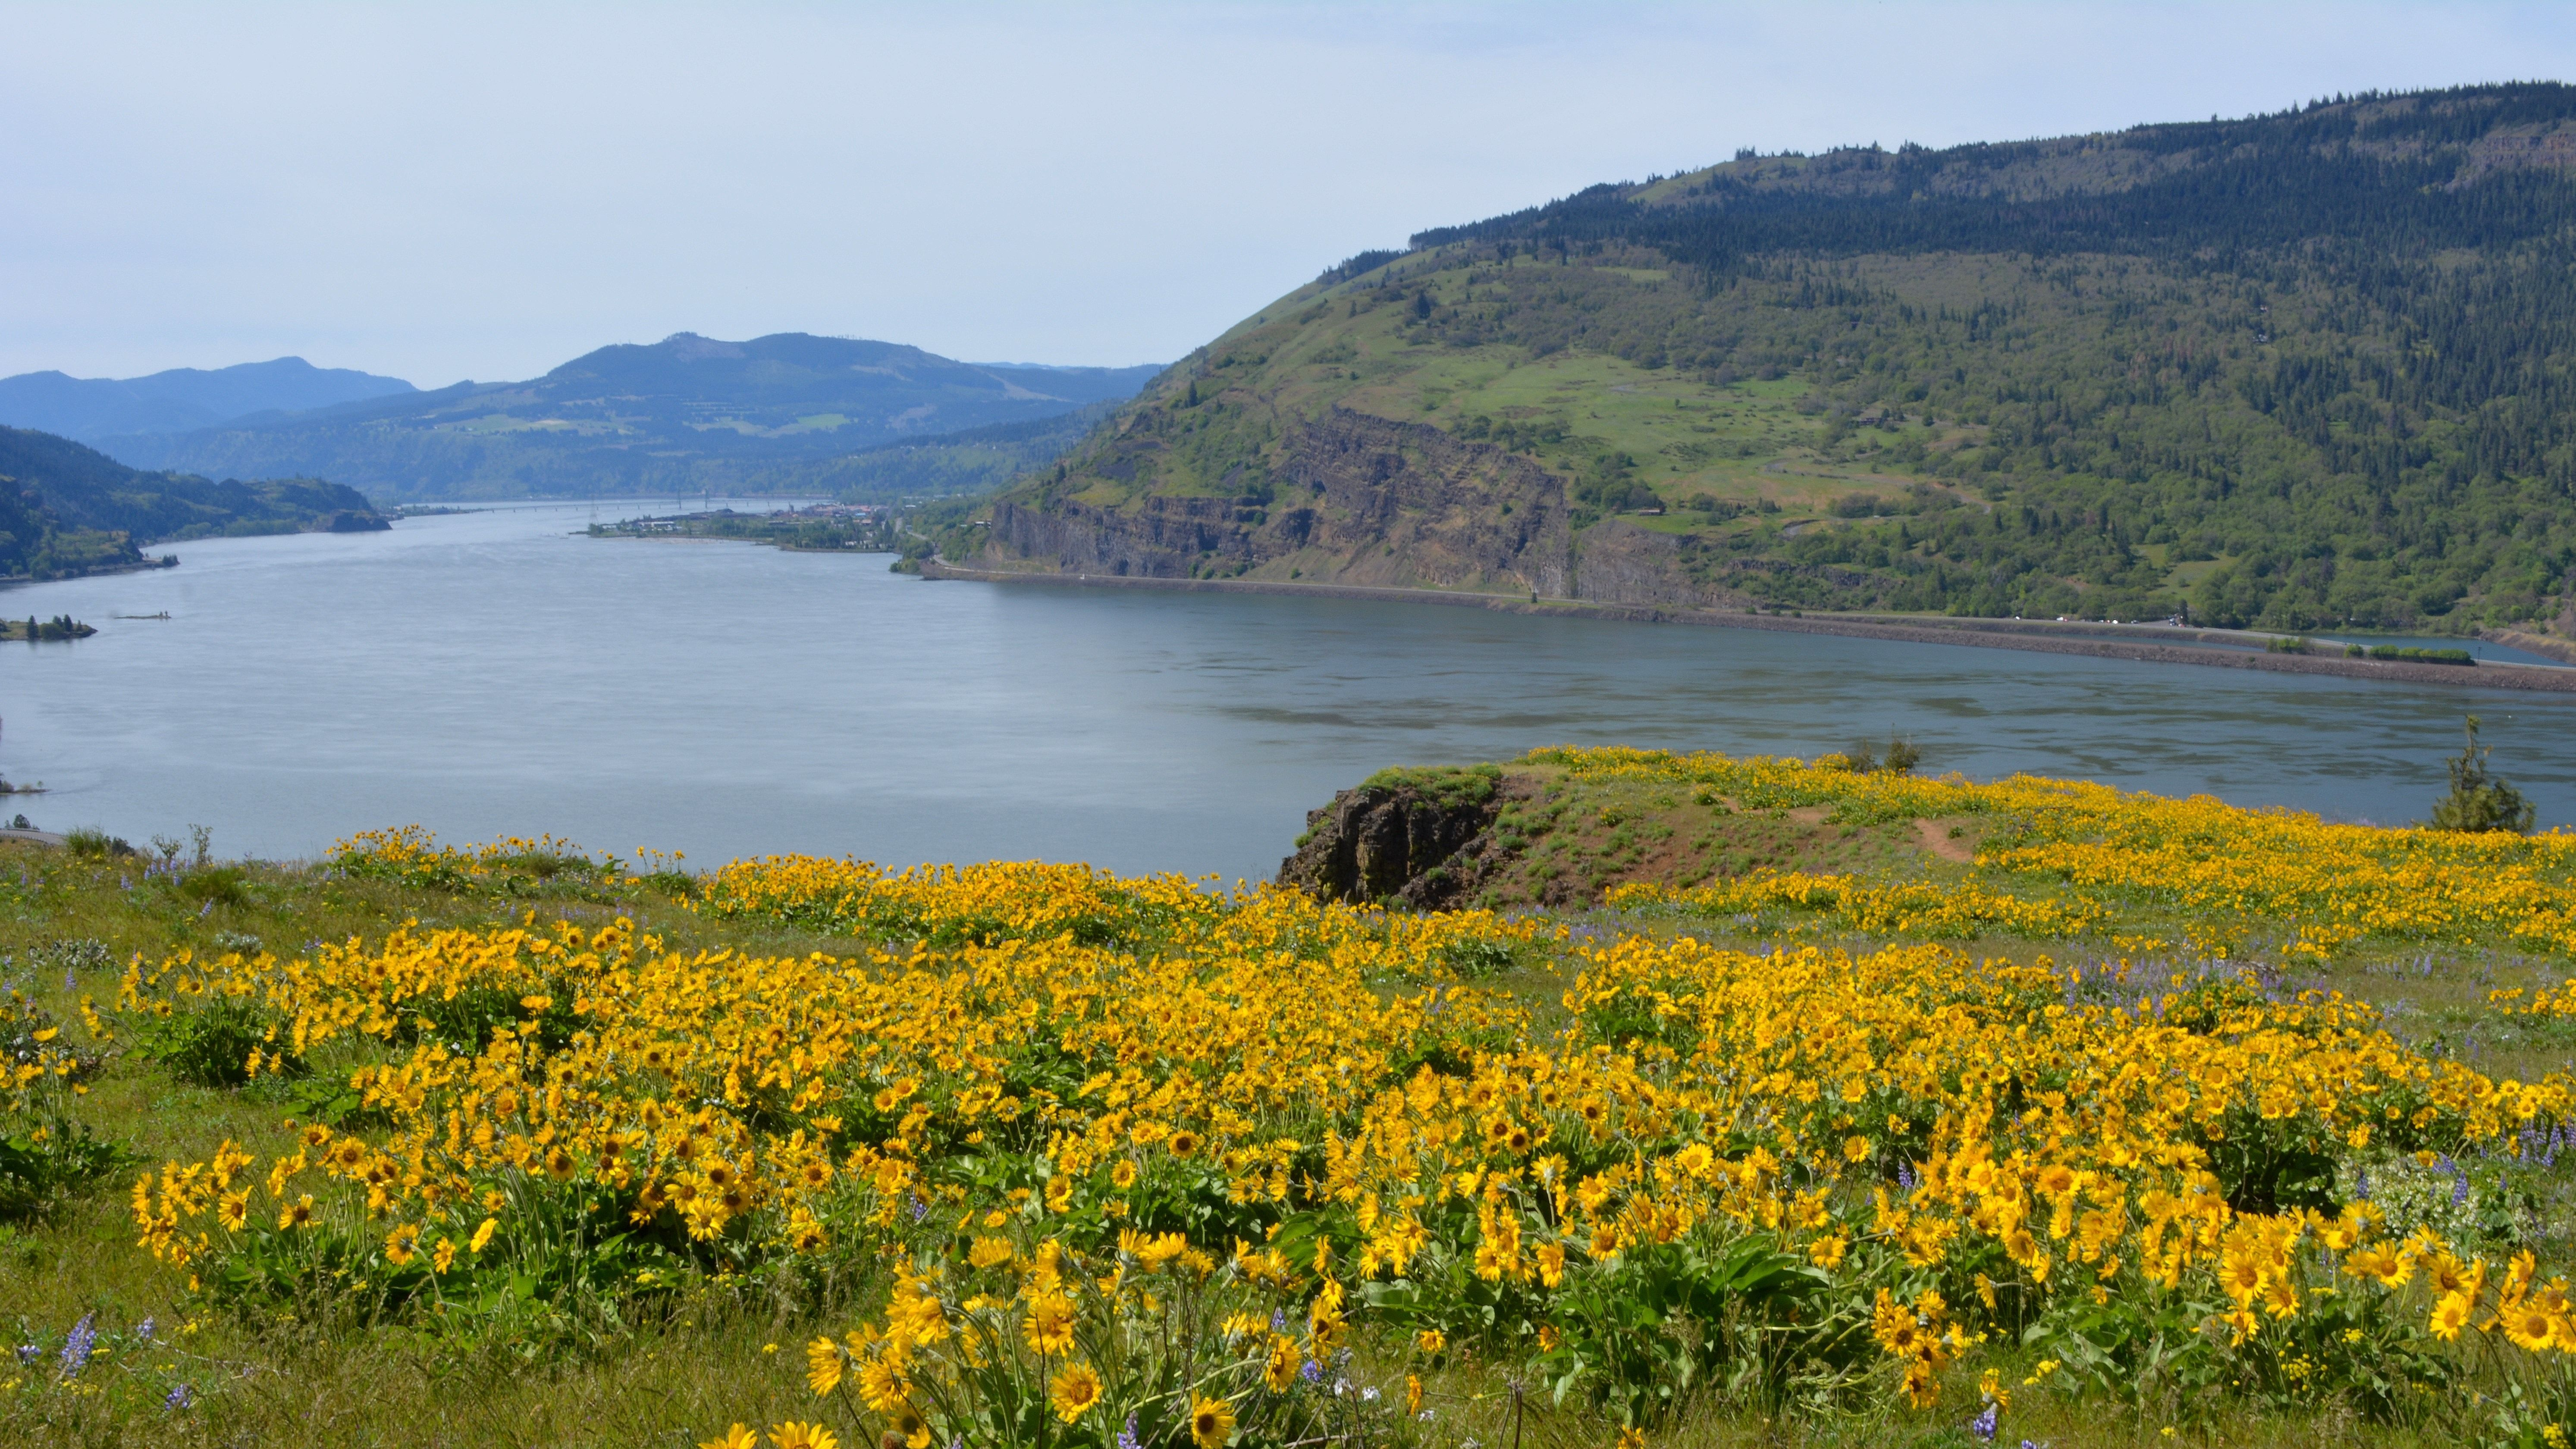 Columbia River Gorge Commission Monthly Meeting: August